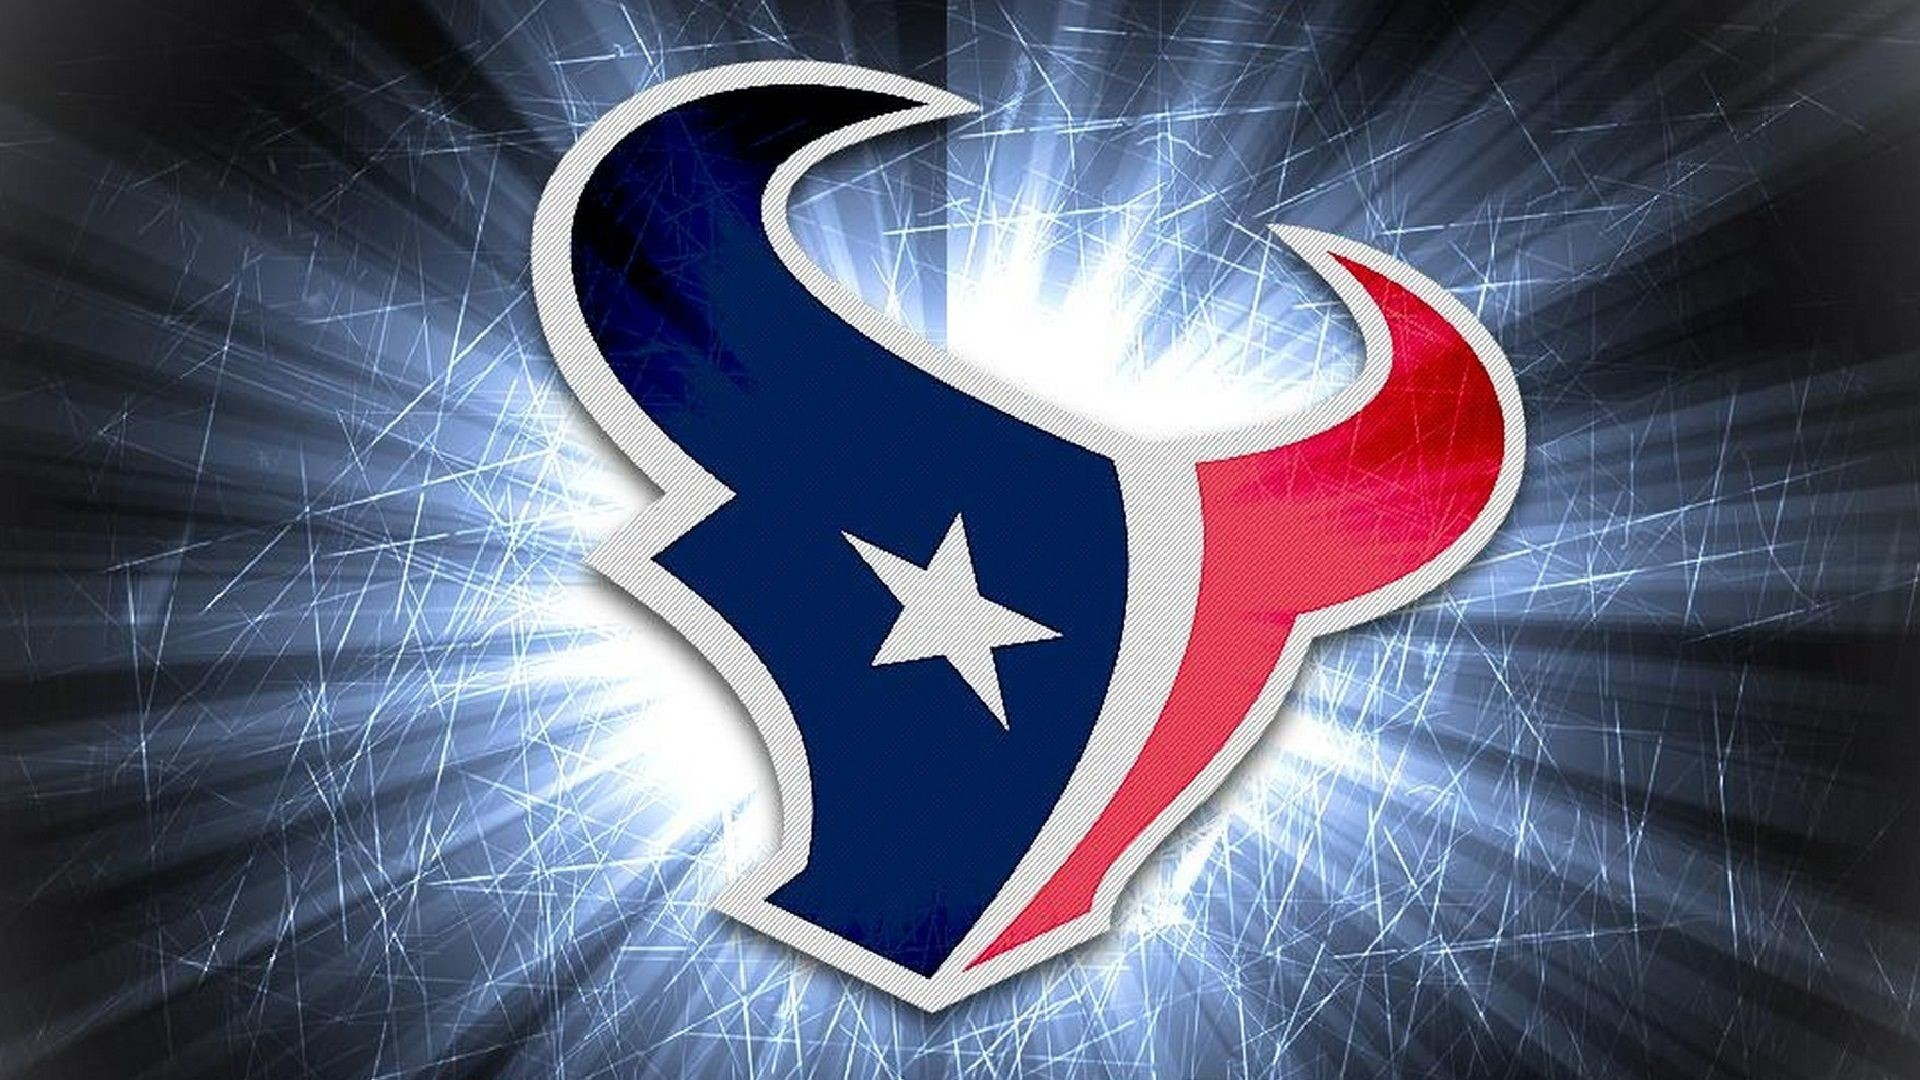 1920x1080 Houston Texans HD Wallpapers | Best NFL Wallpapers